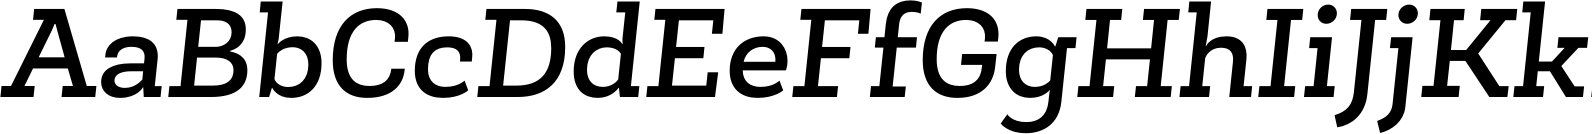 Newslab Medium Italic